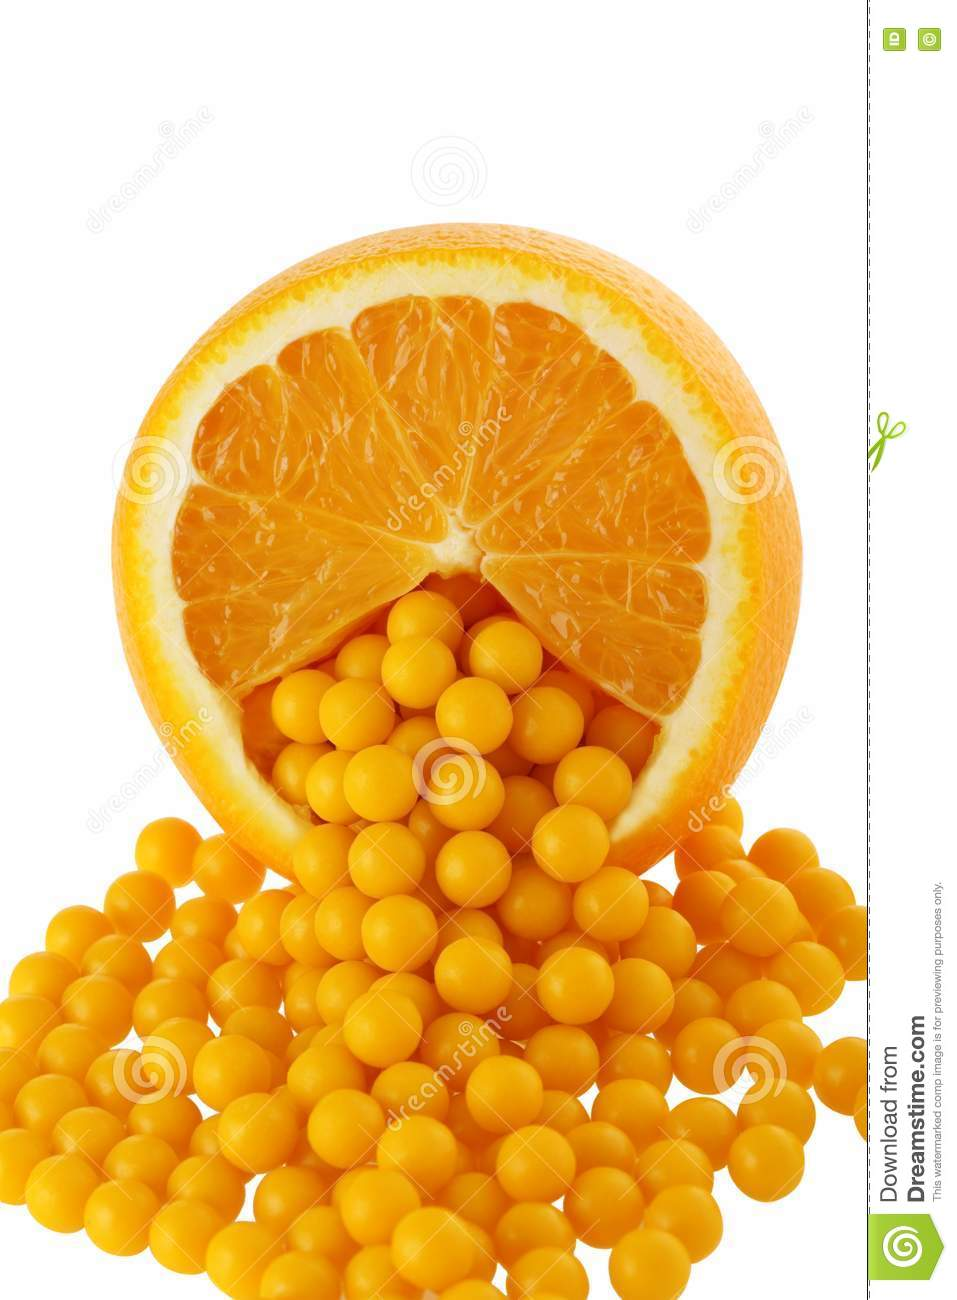 orange and vitamin c solution Standardized dye solution can be used to measure unknown vitamin c content in fruit juices 7) prepare juice samples: samples of fresh, unopened orange juice will be available, as well as samples of old, pre-opened juice.